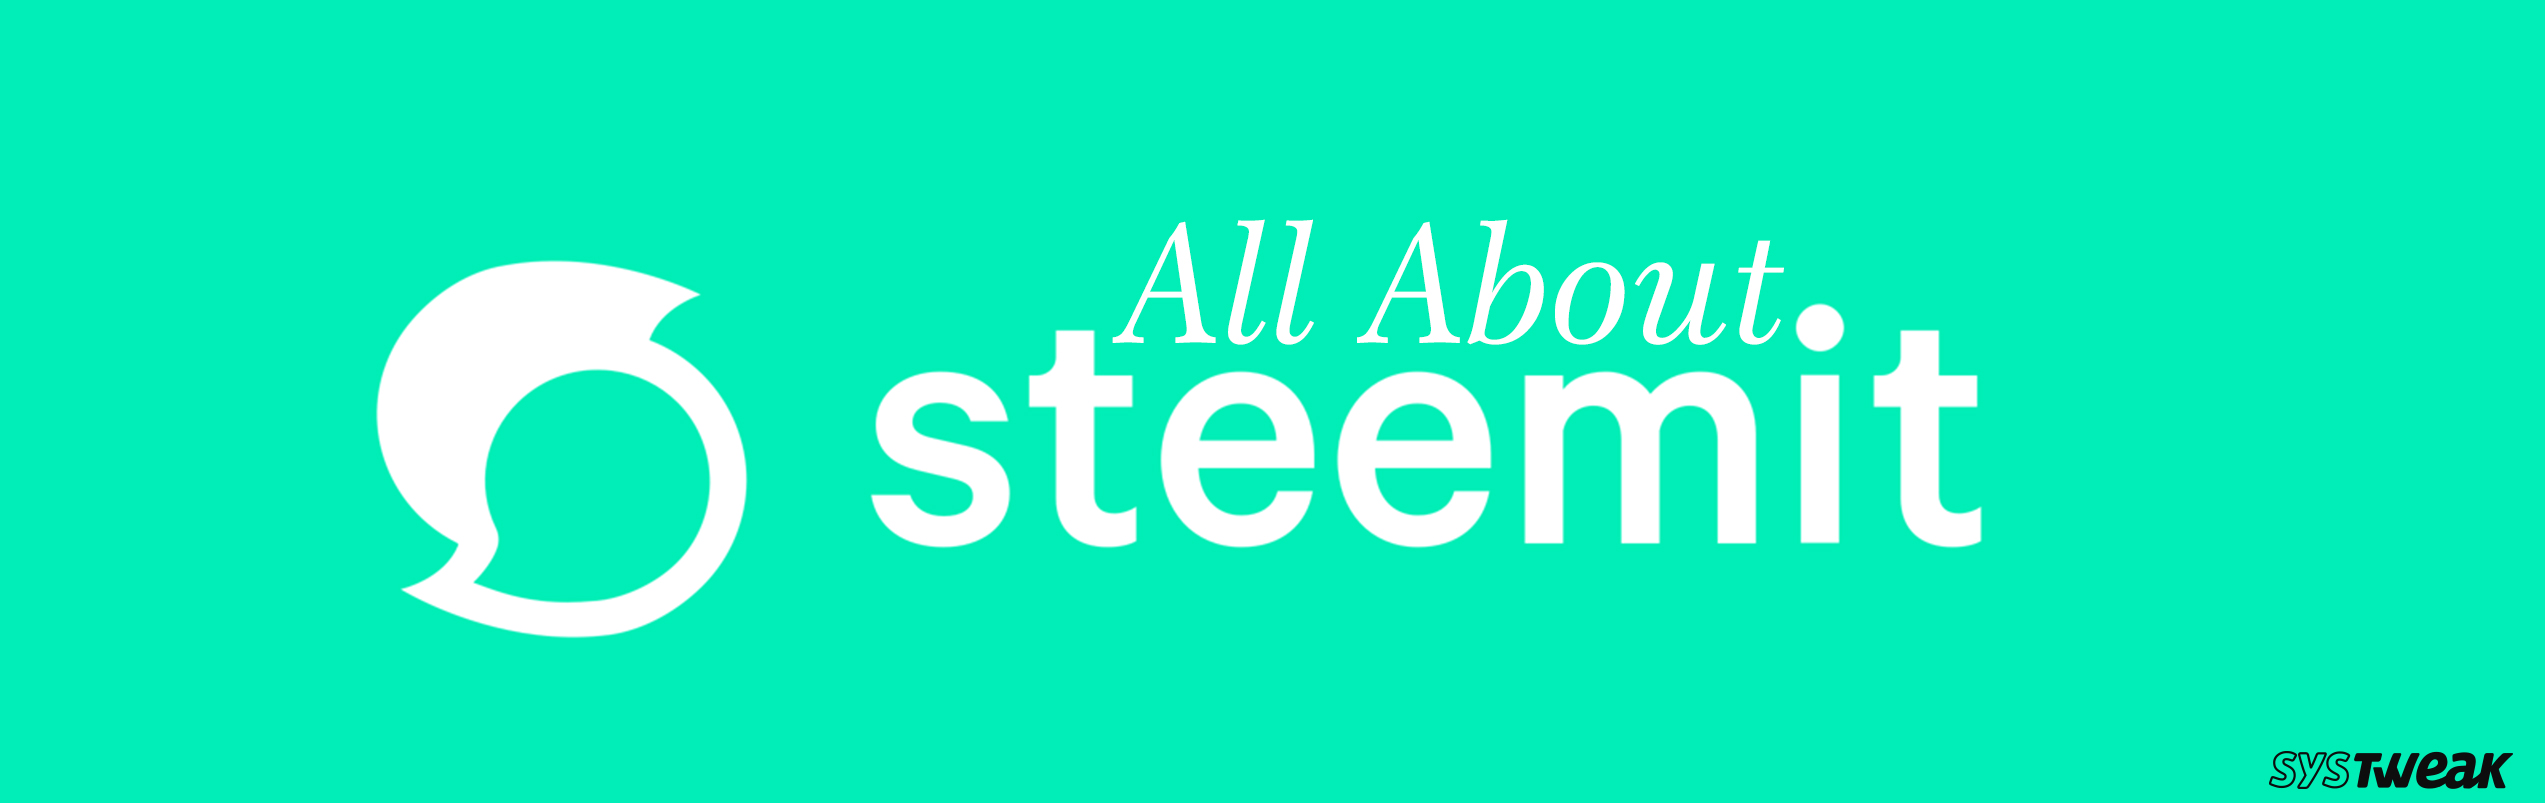 STEEMIT AND ALL ABOUT IT!